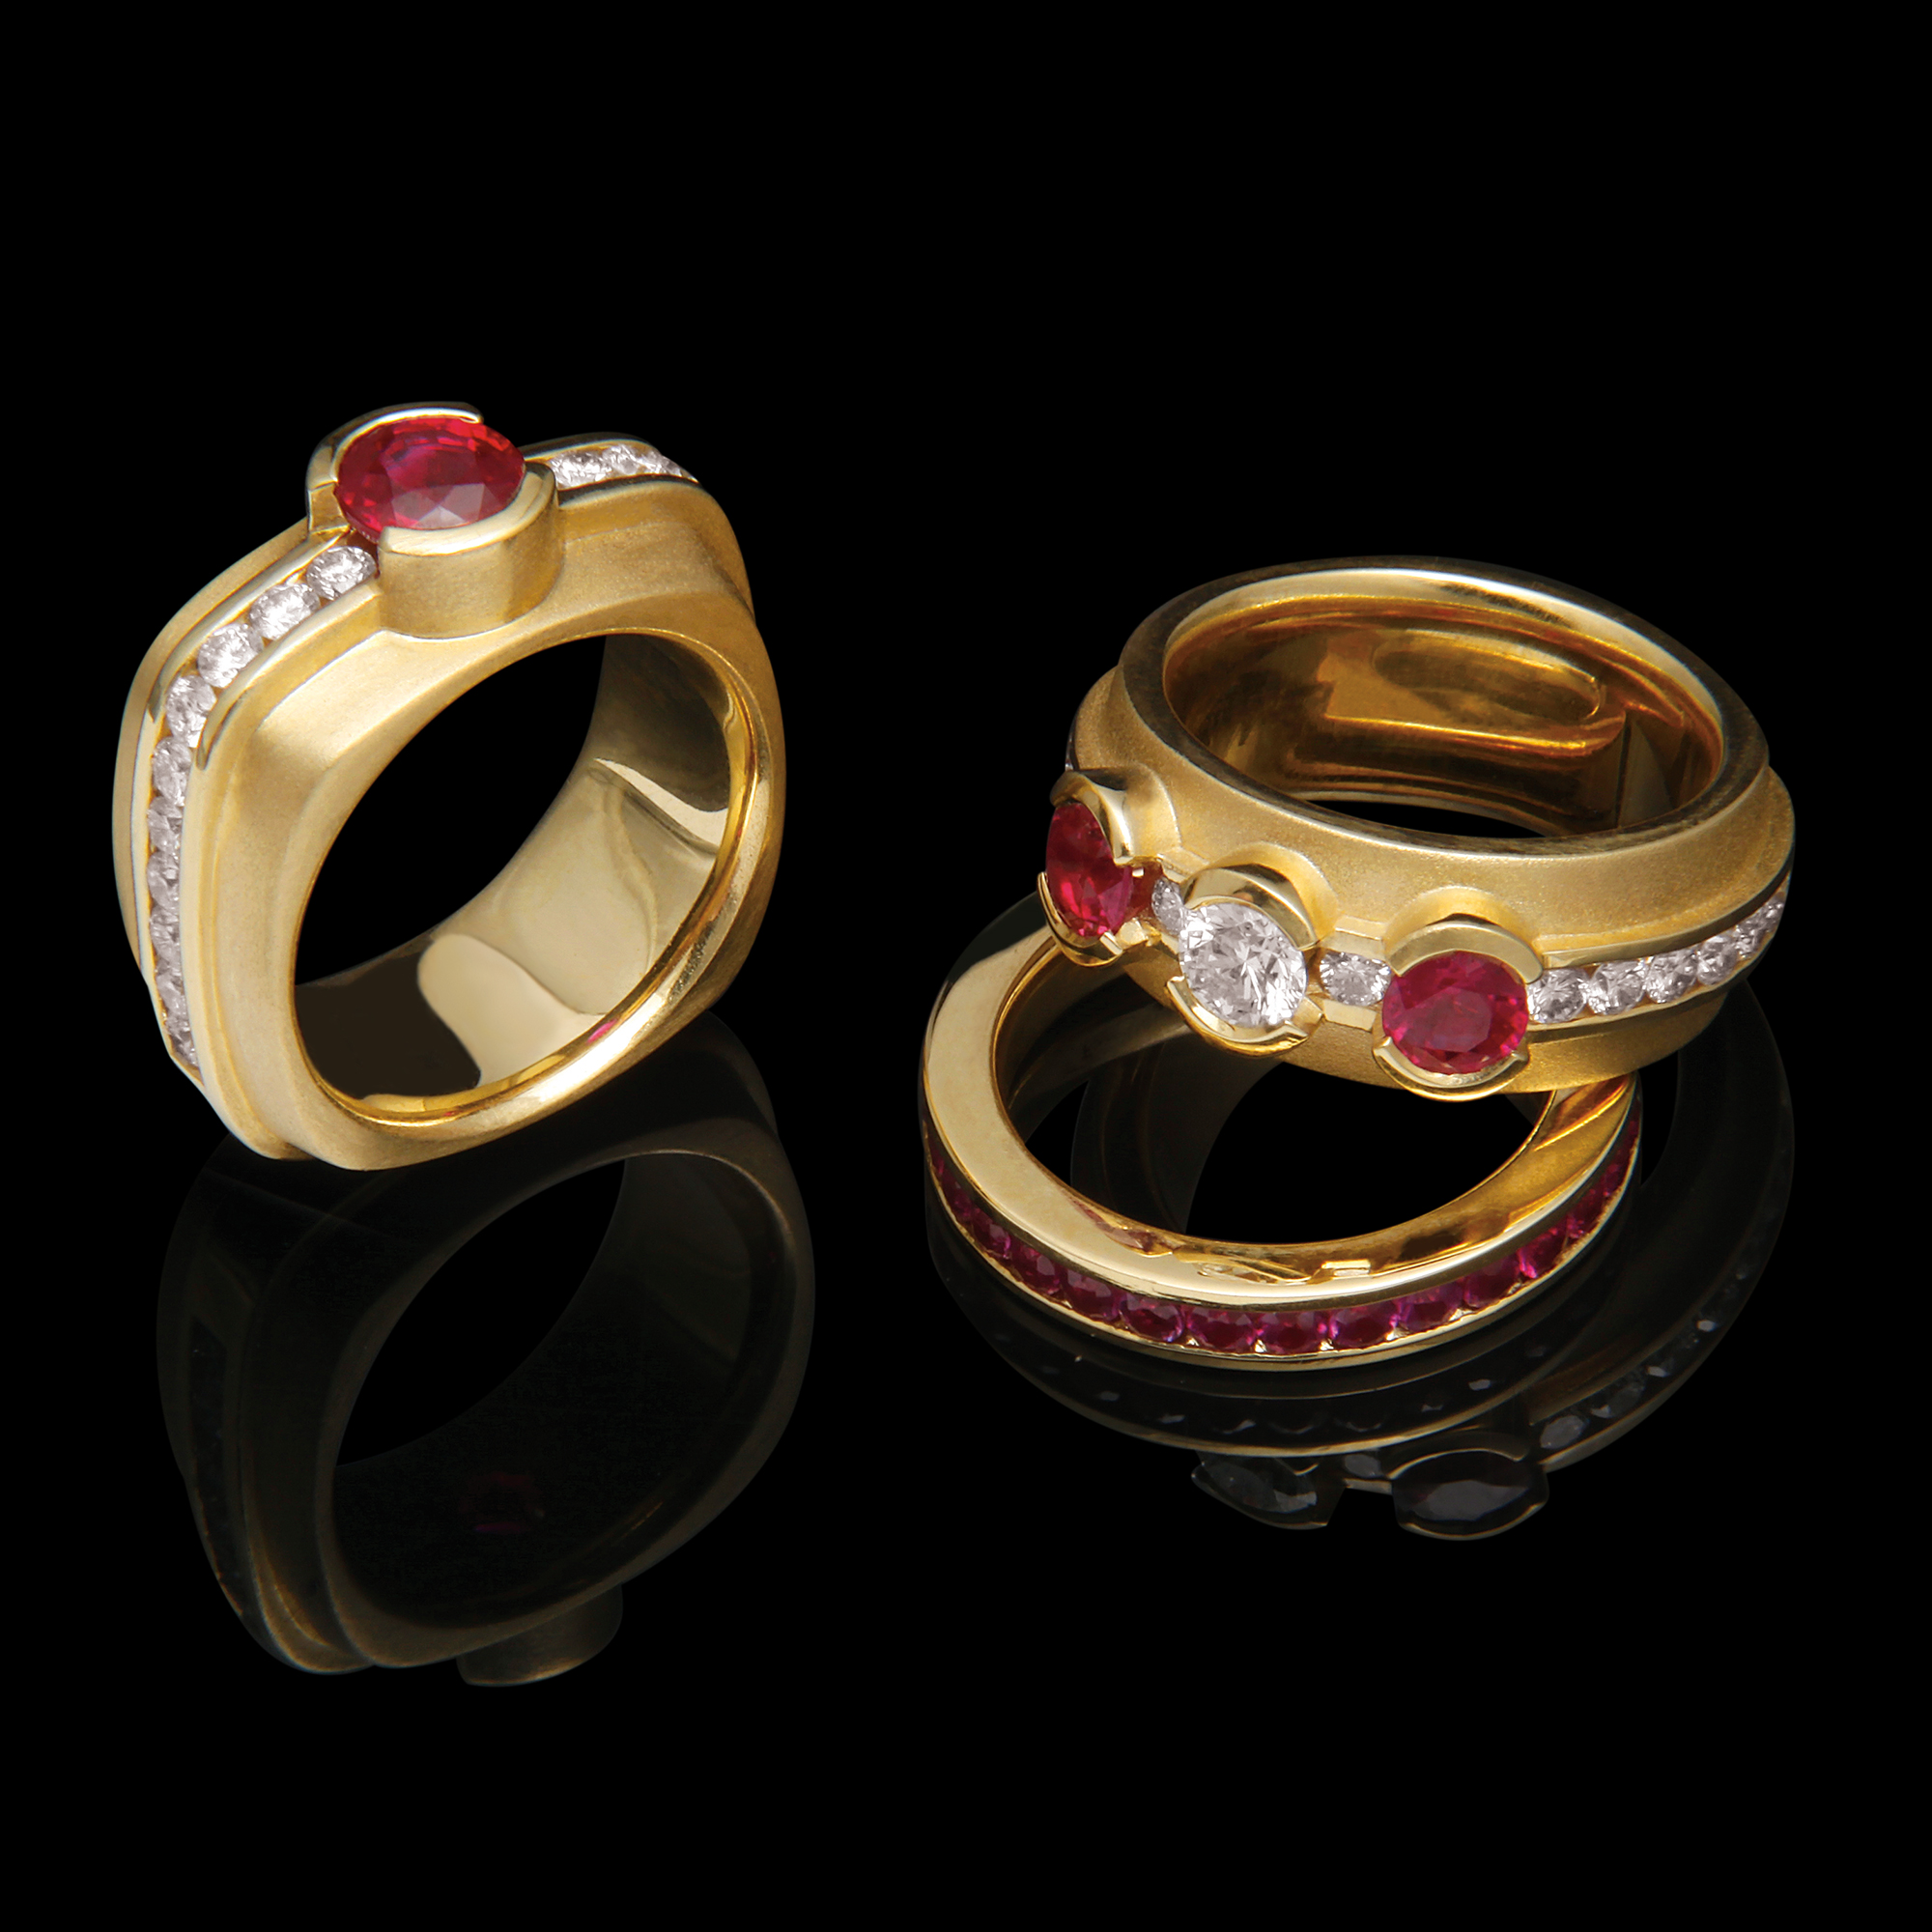 FRIDA | Fine Jewellery. Elska Collection. 18kt gold rings with diamonds and gemstones.